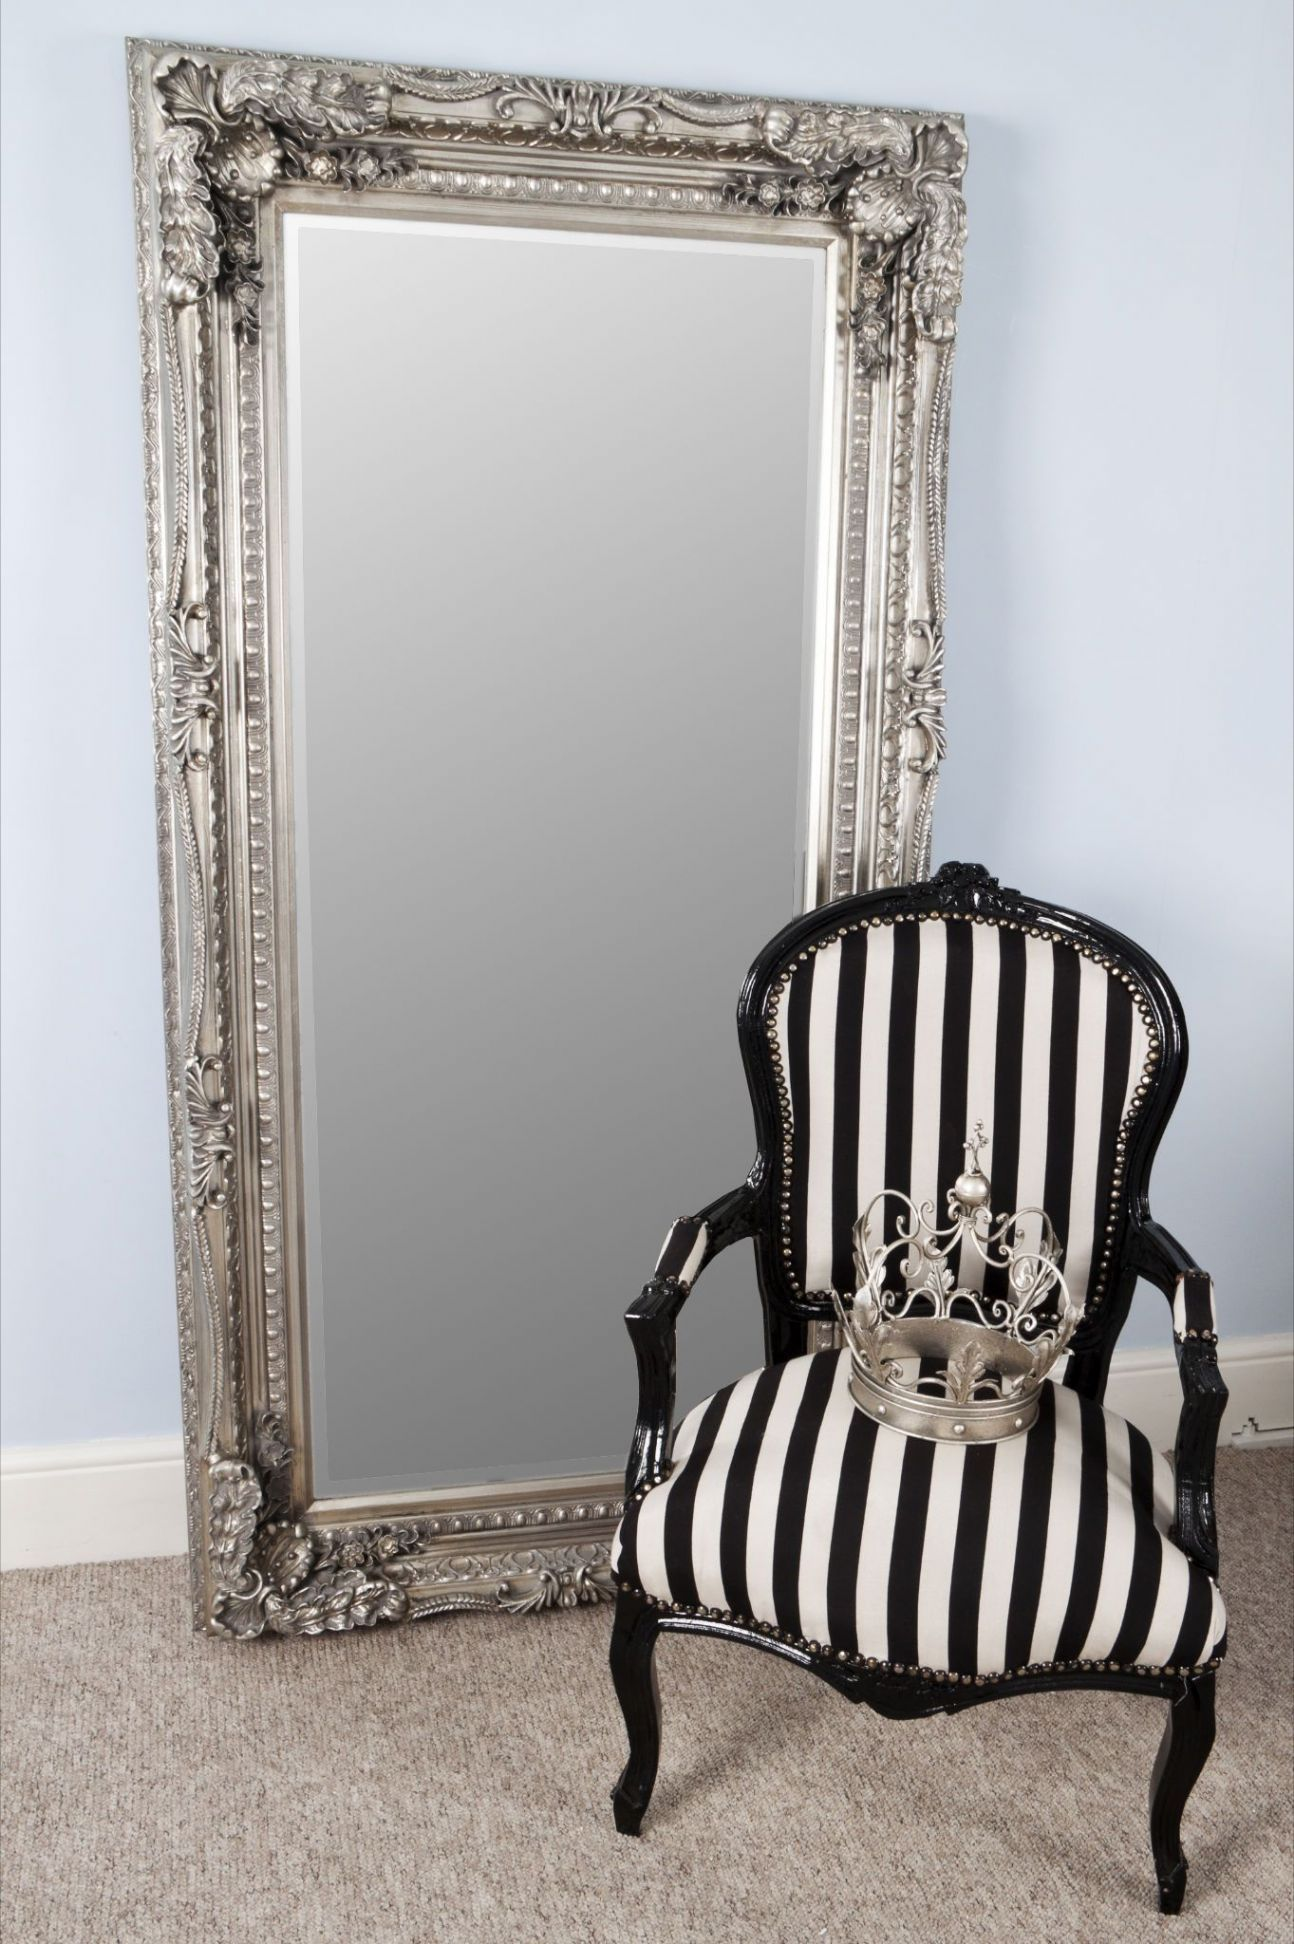 Full Length Mirror And French Corner Chair Antique Floor Mirror